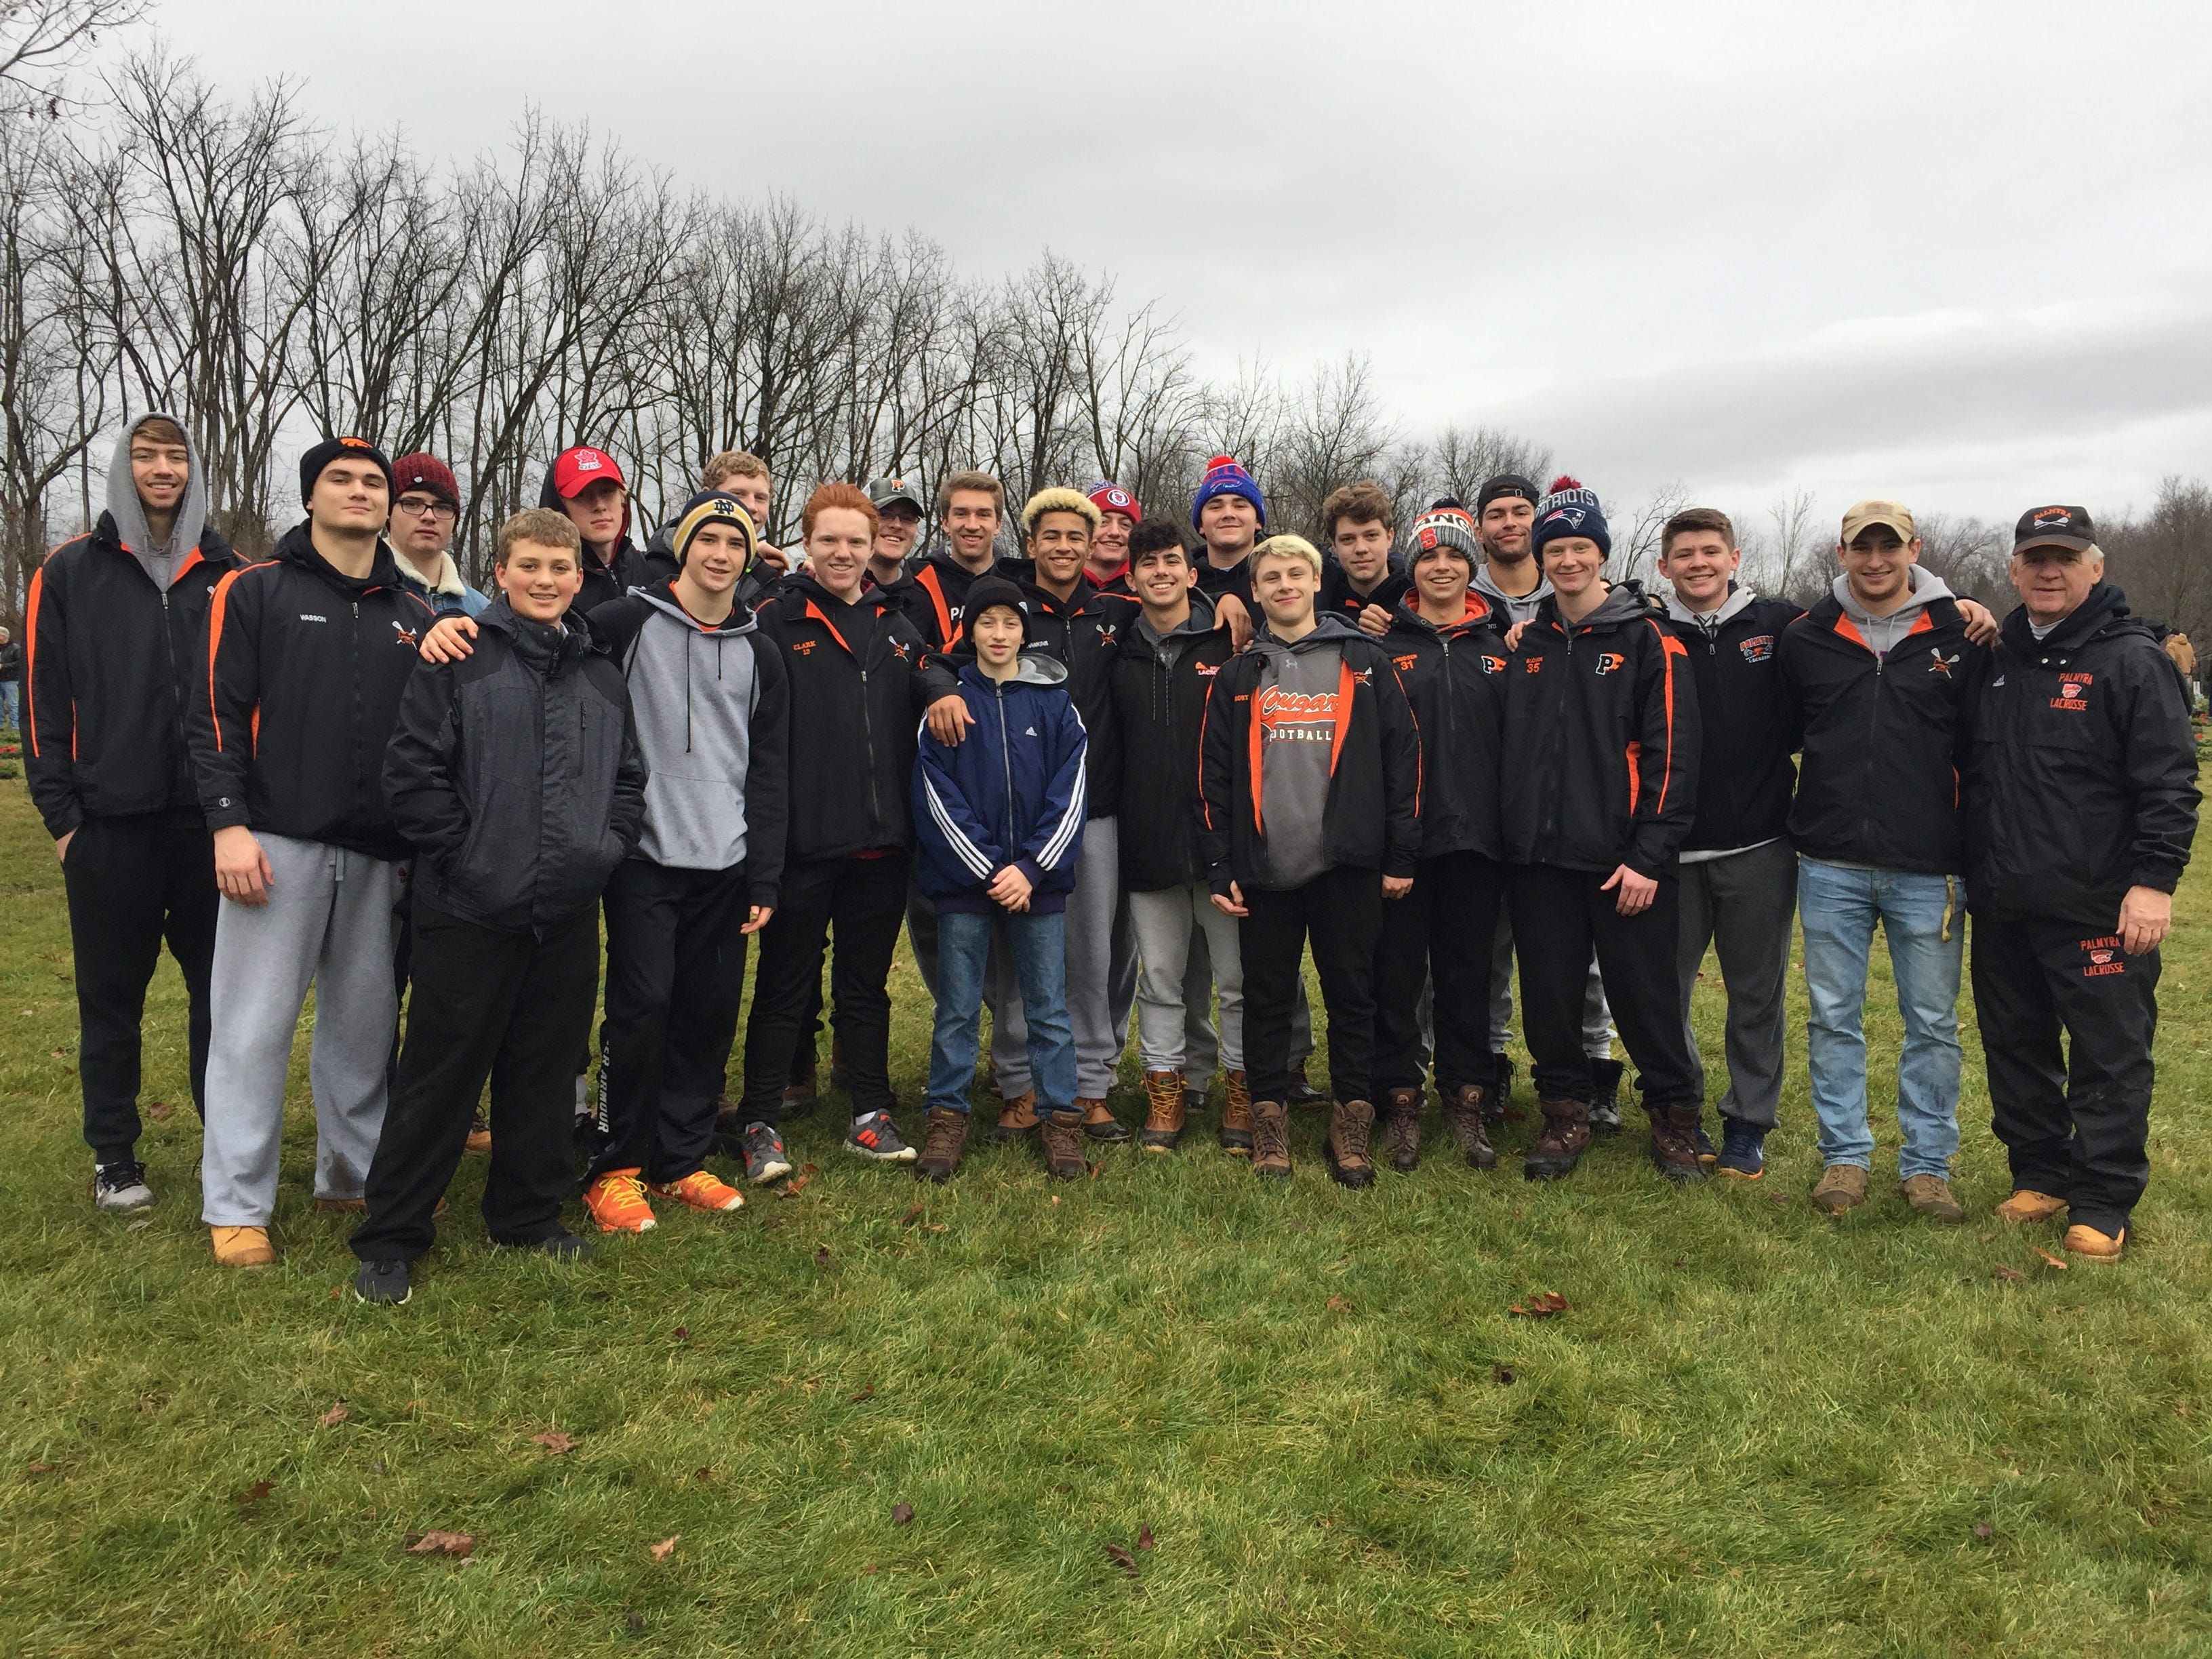 The Palmyra boys lacrosse team poses for a photo after taking part in the Wreaths Across America event last Saturday.